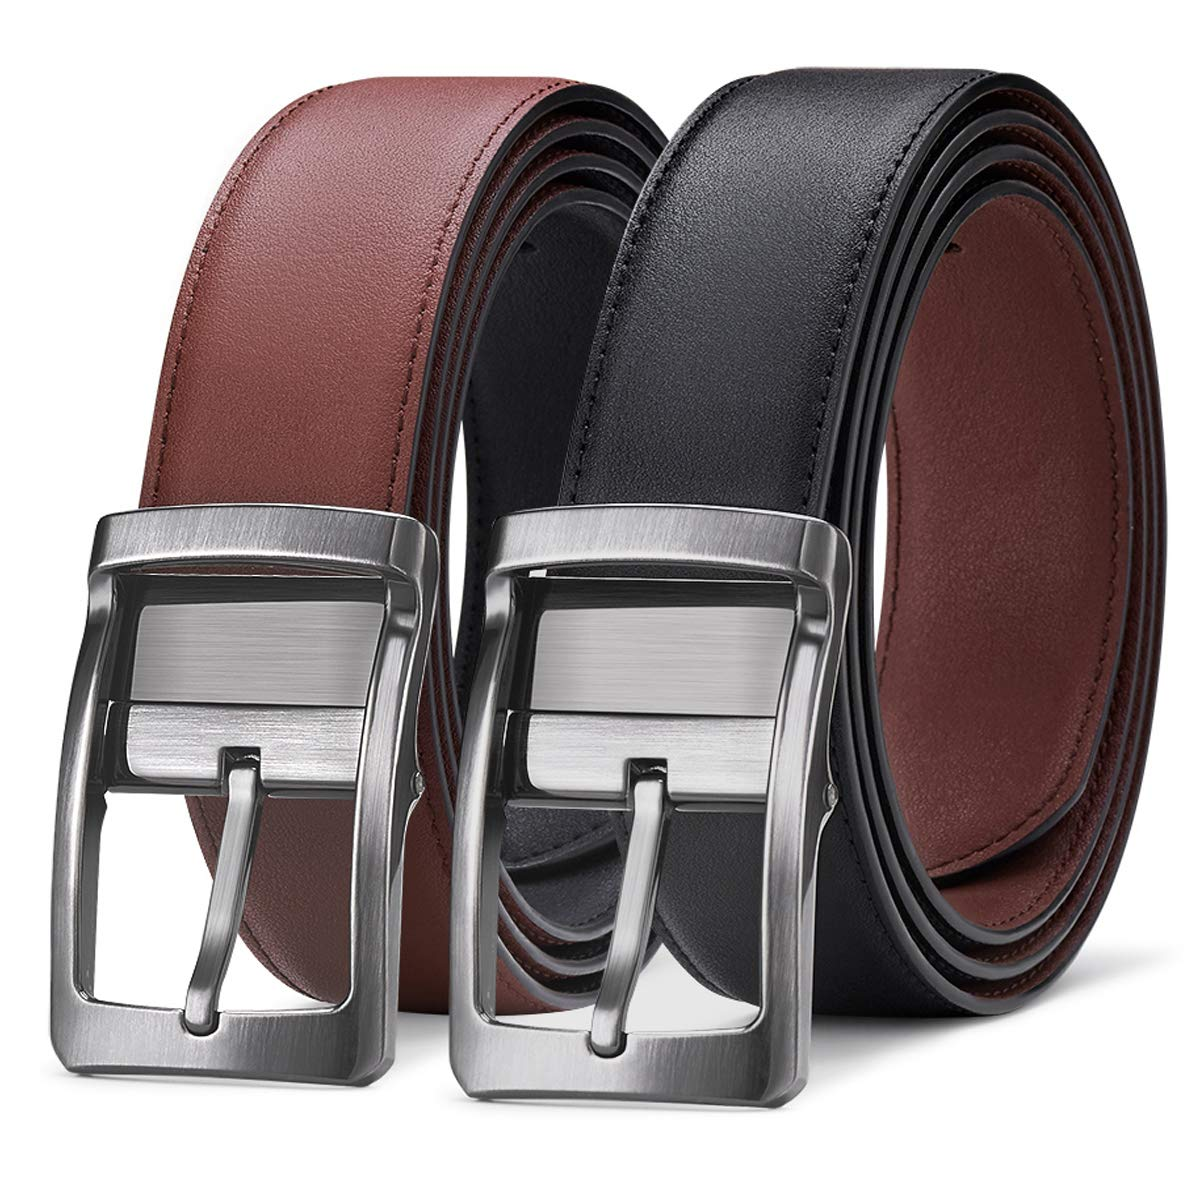 Mens Leather Ratchet Dress Belts with Automatic Buckle in Gift Box